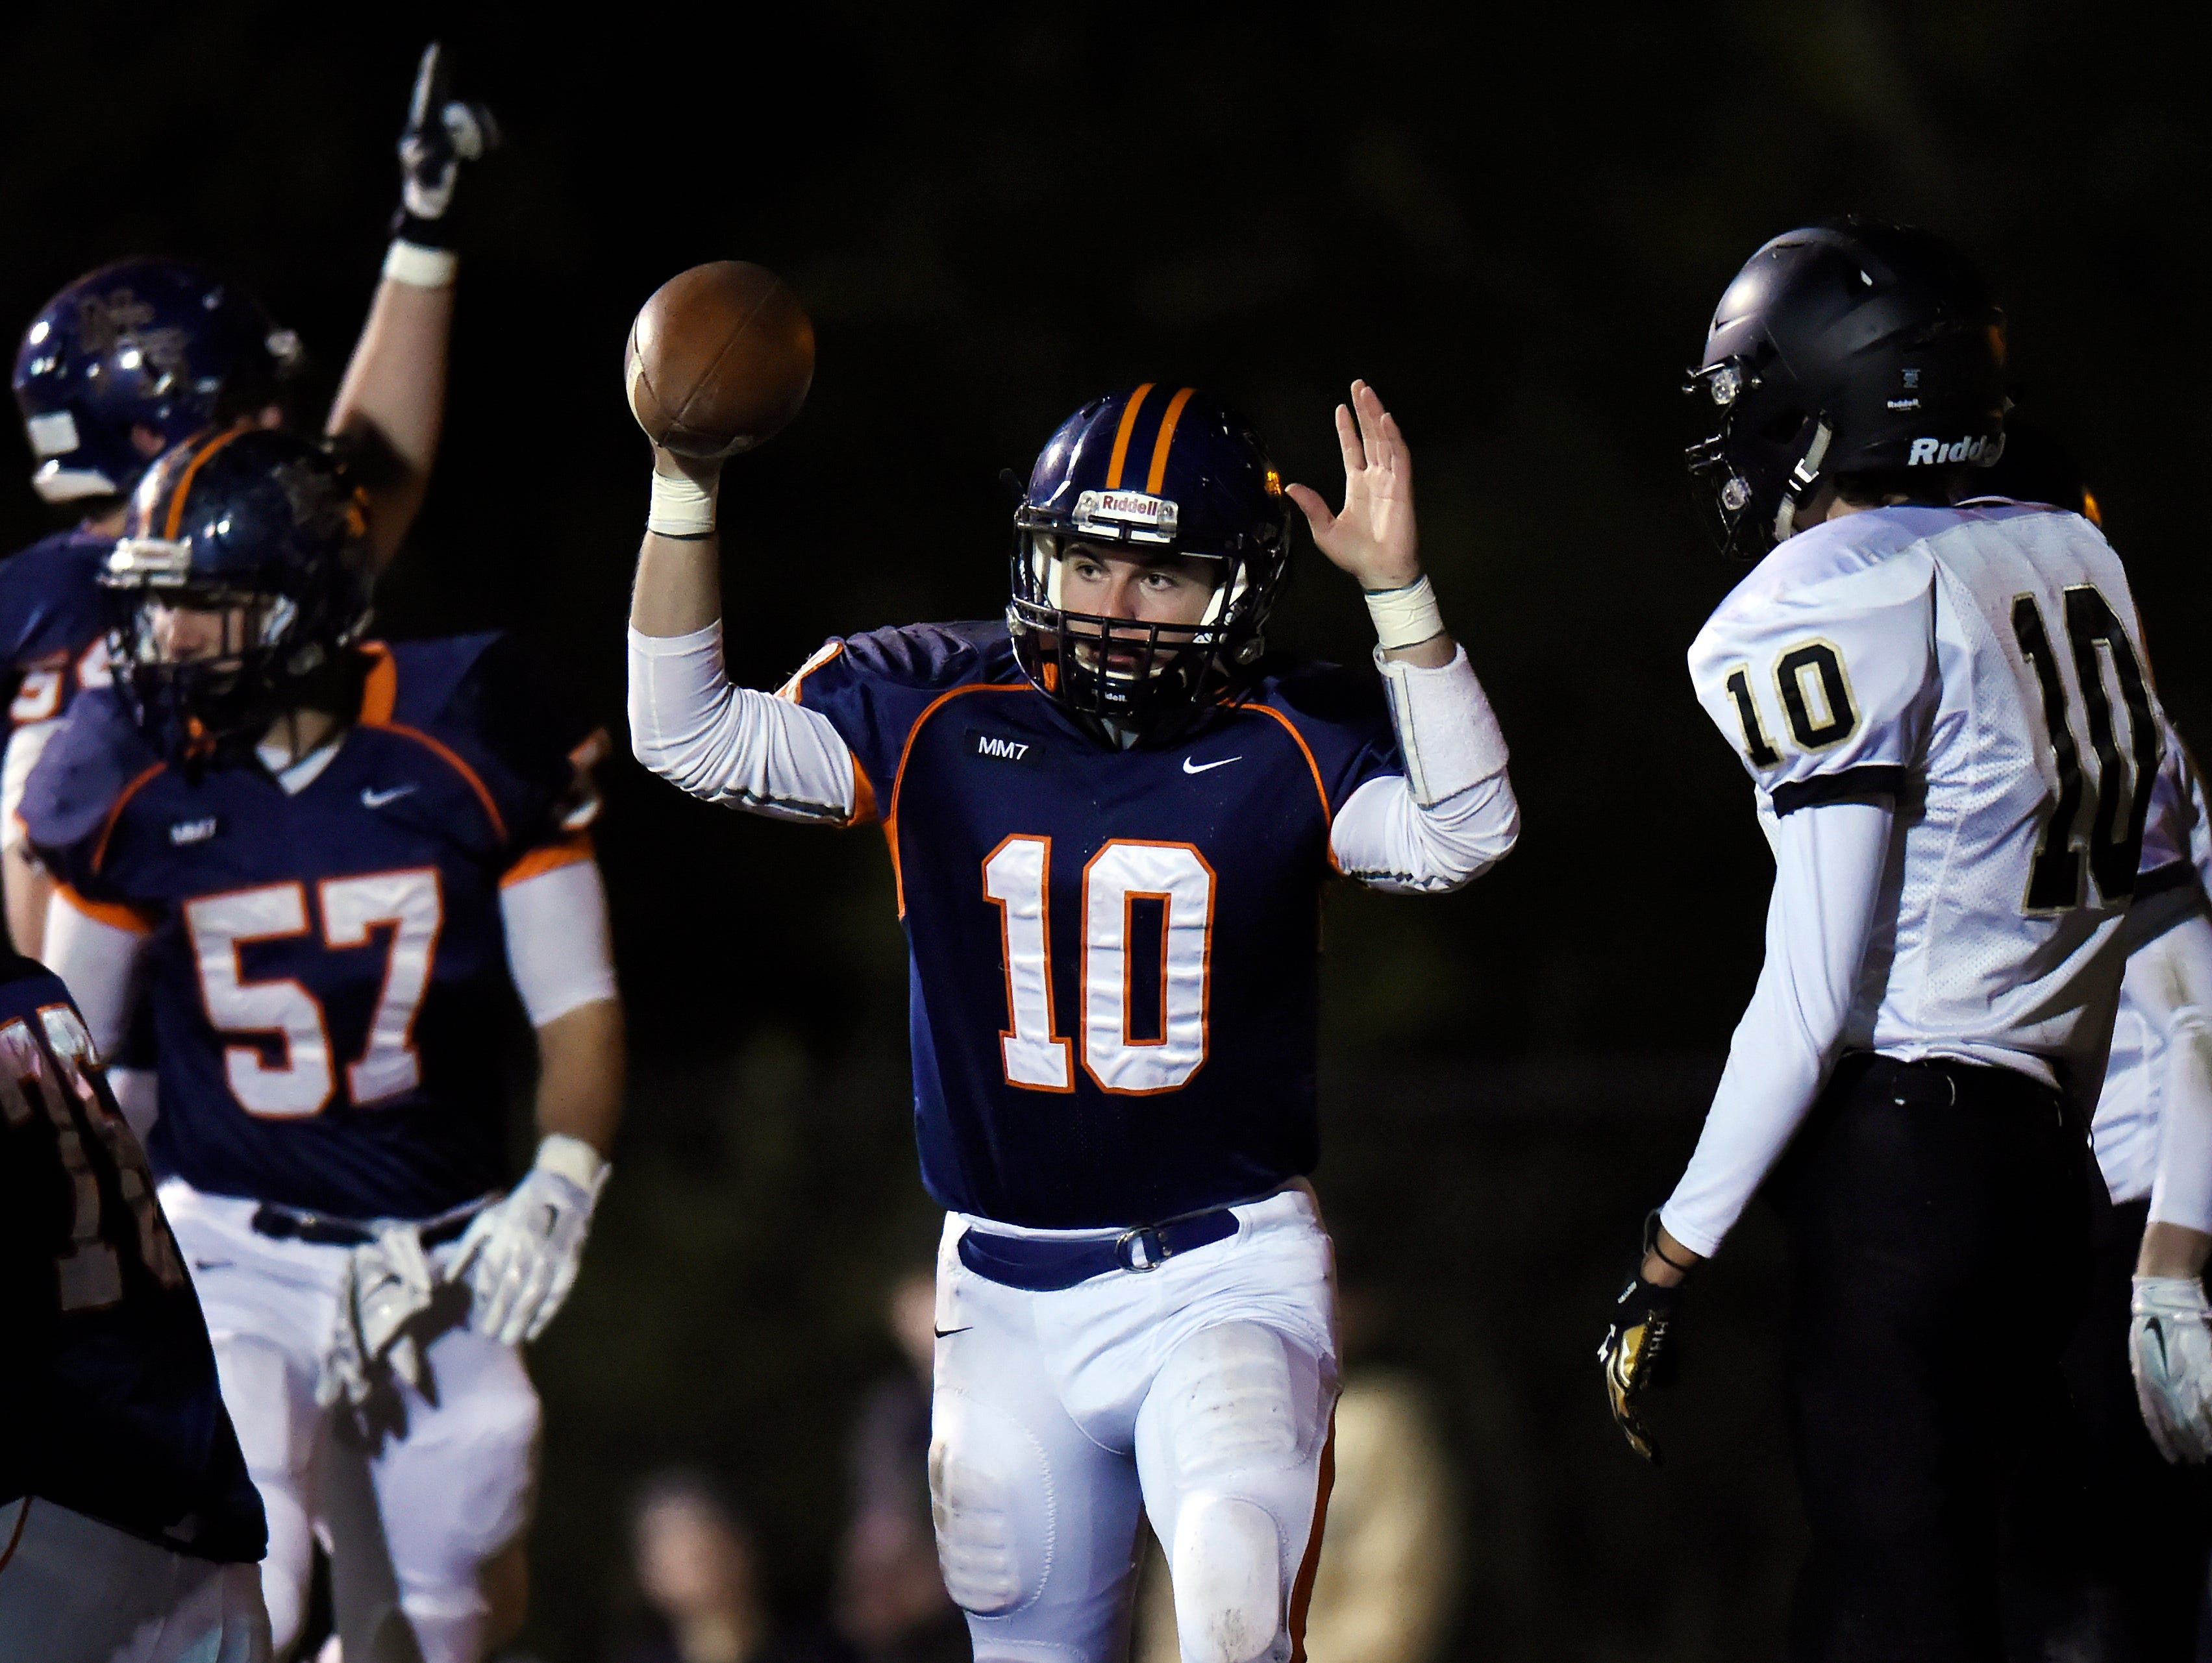 Nashville Christian quarterback Kyle Tidwell (10) celebrates after scoring on a 1-yard touchdown run in the first half of an 1A quarterfinal playoff football game against Wayne County at Nashville Christian High School on Friday, Nov. 20, 2015 in Nashville, Tenn.